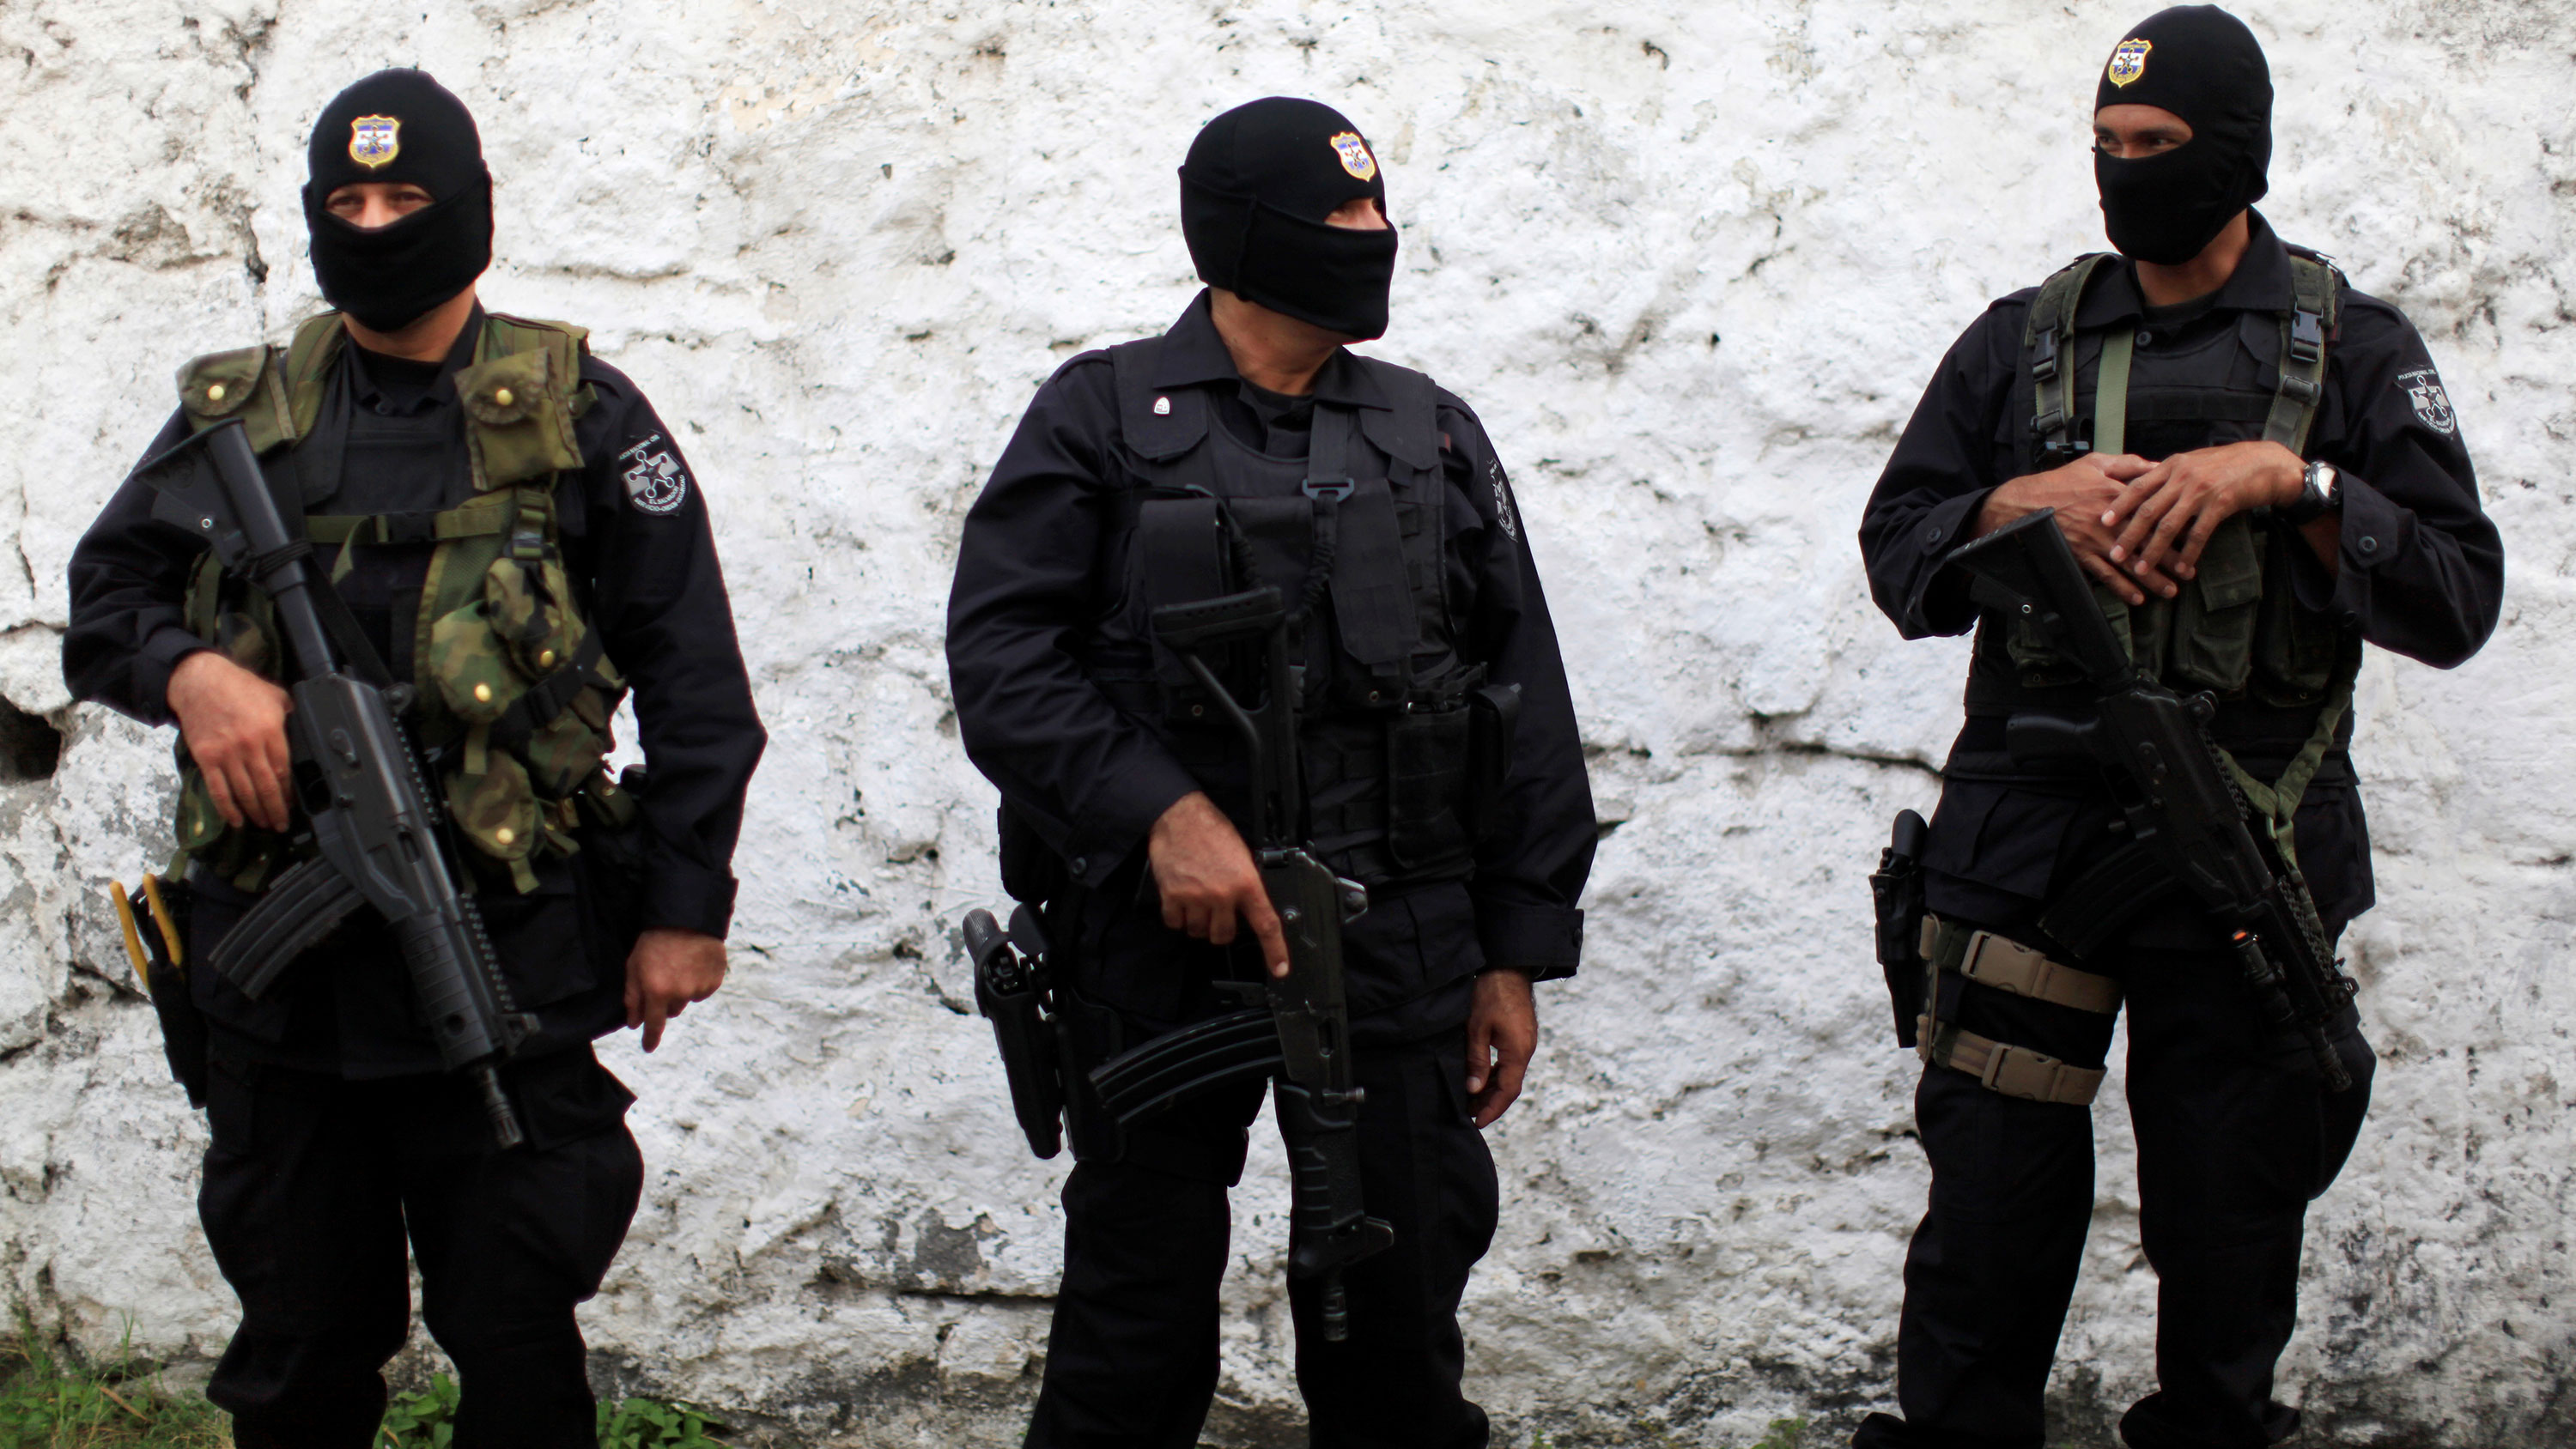 El Salvador: US-funded police linked to illegal executions - CNN com